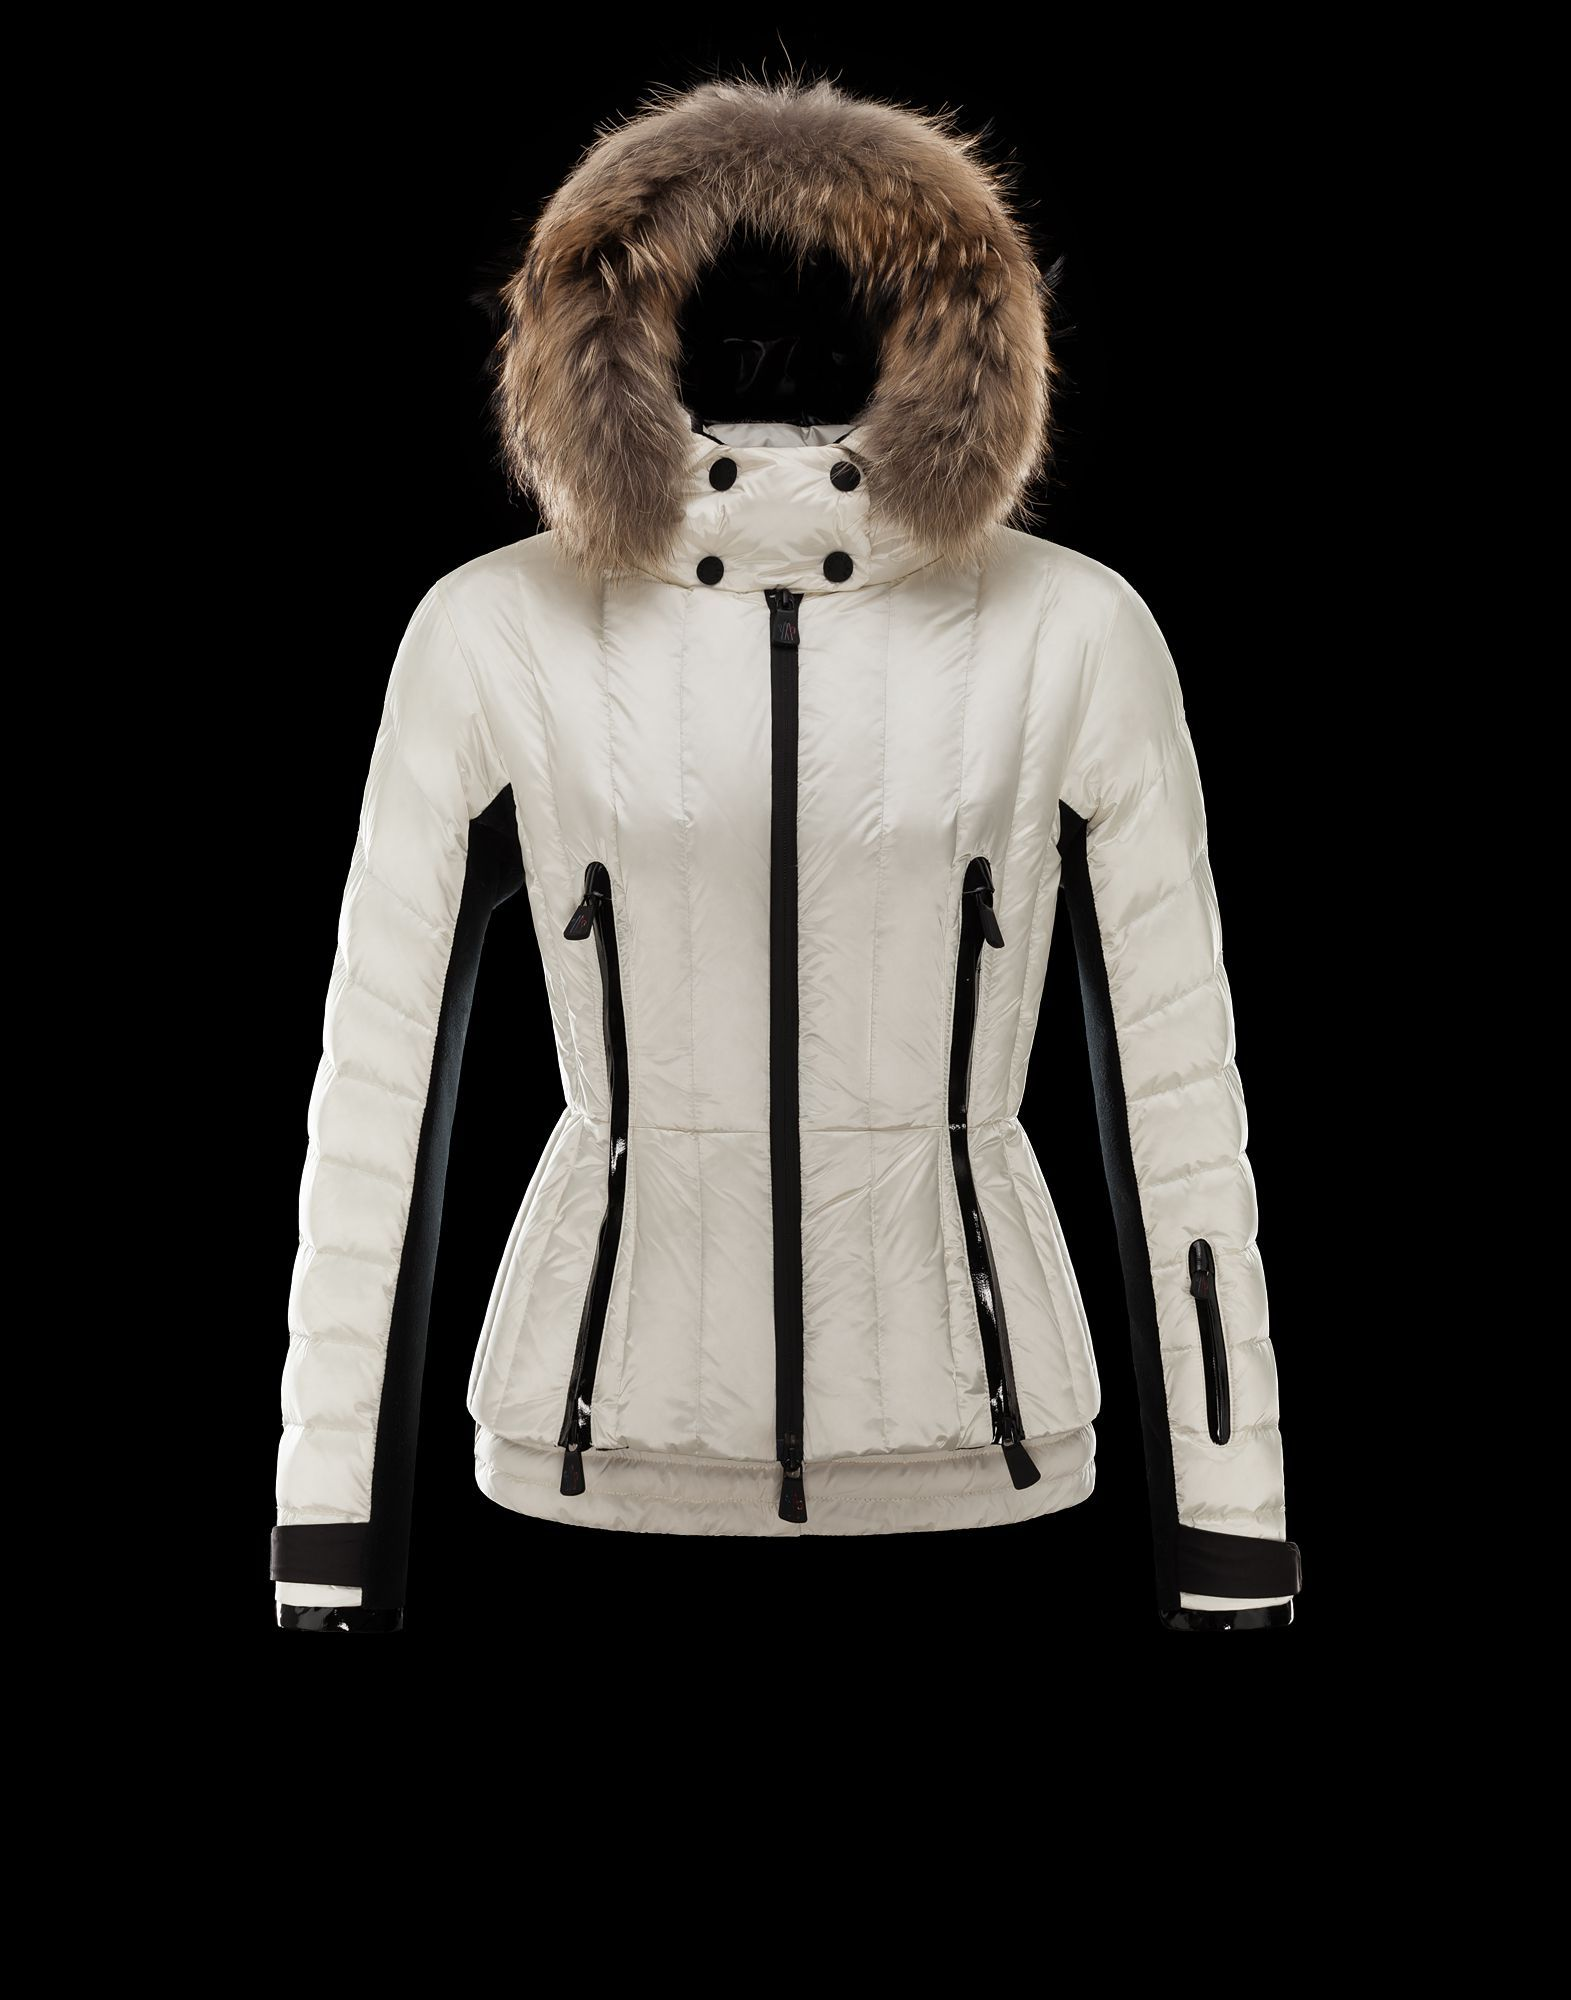 moncler ski jacket on sale